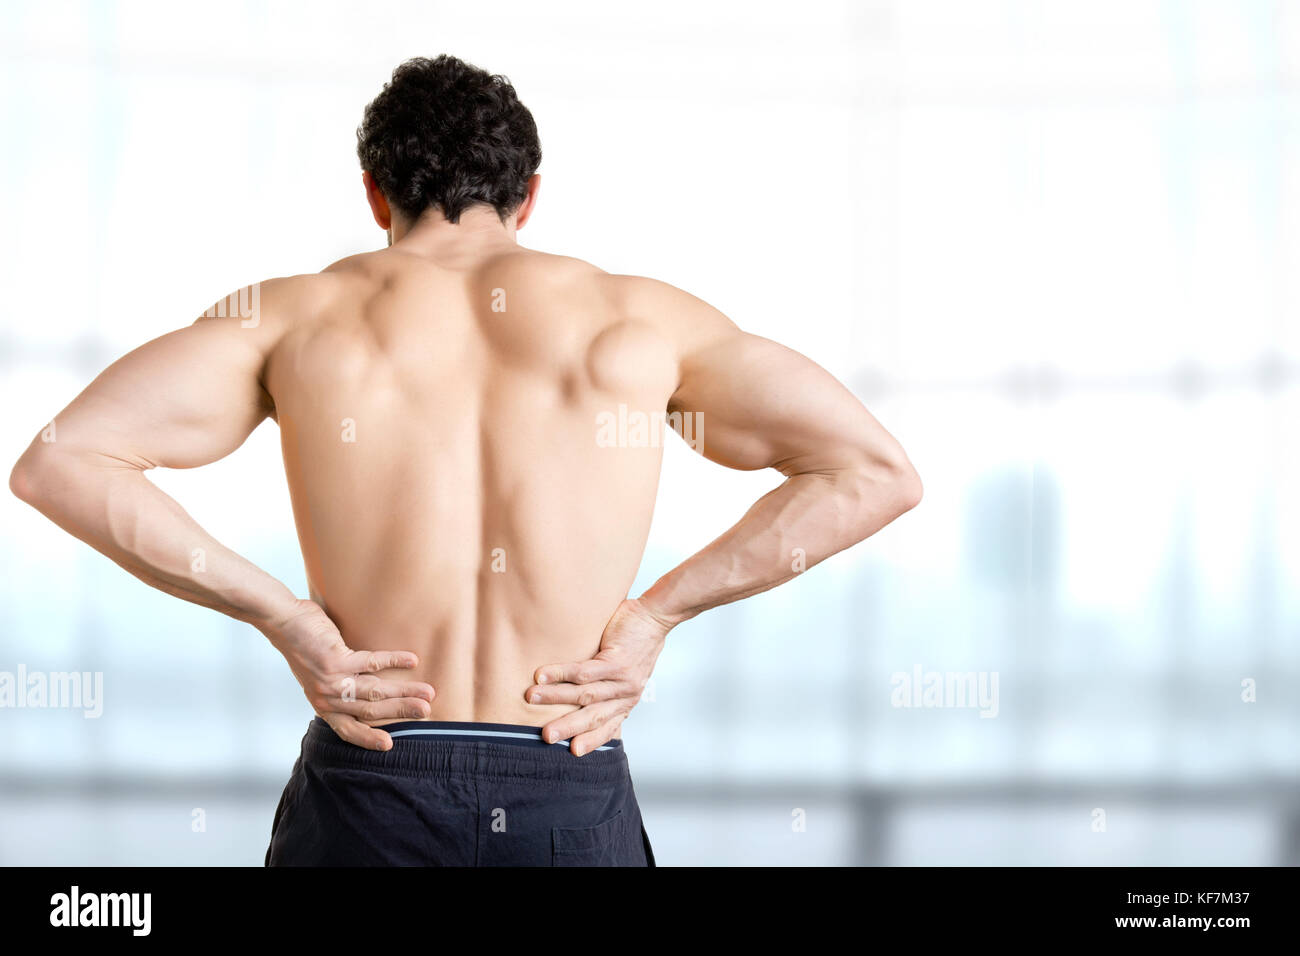 Male athlete with pain in his lower back, isolated in white. Red spot around painful area. - Stock Image